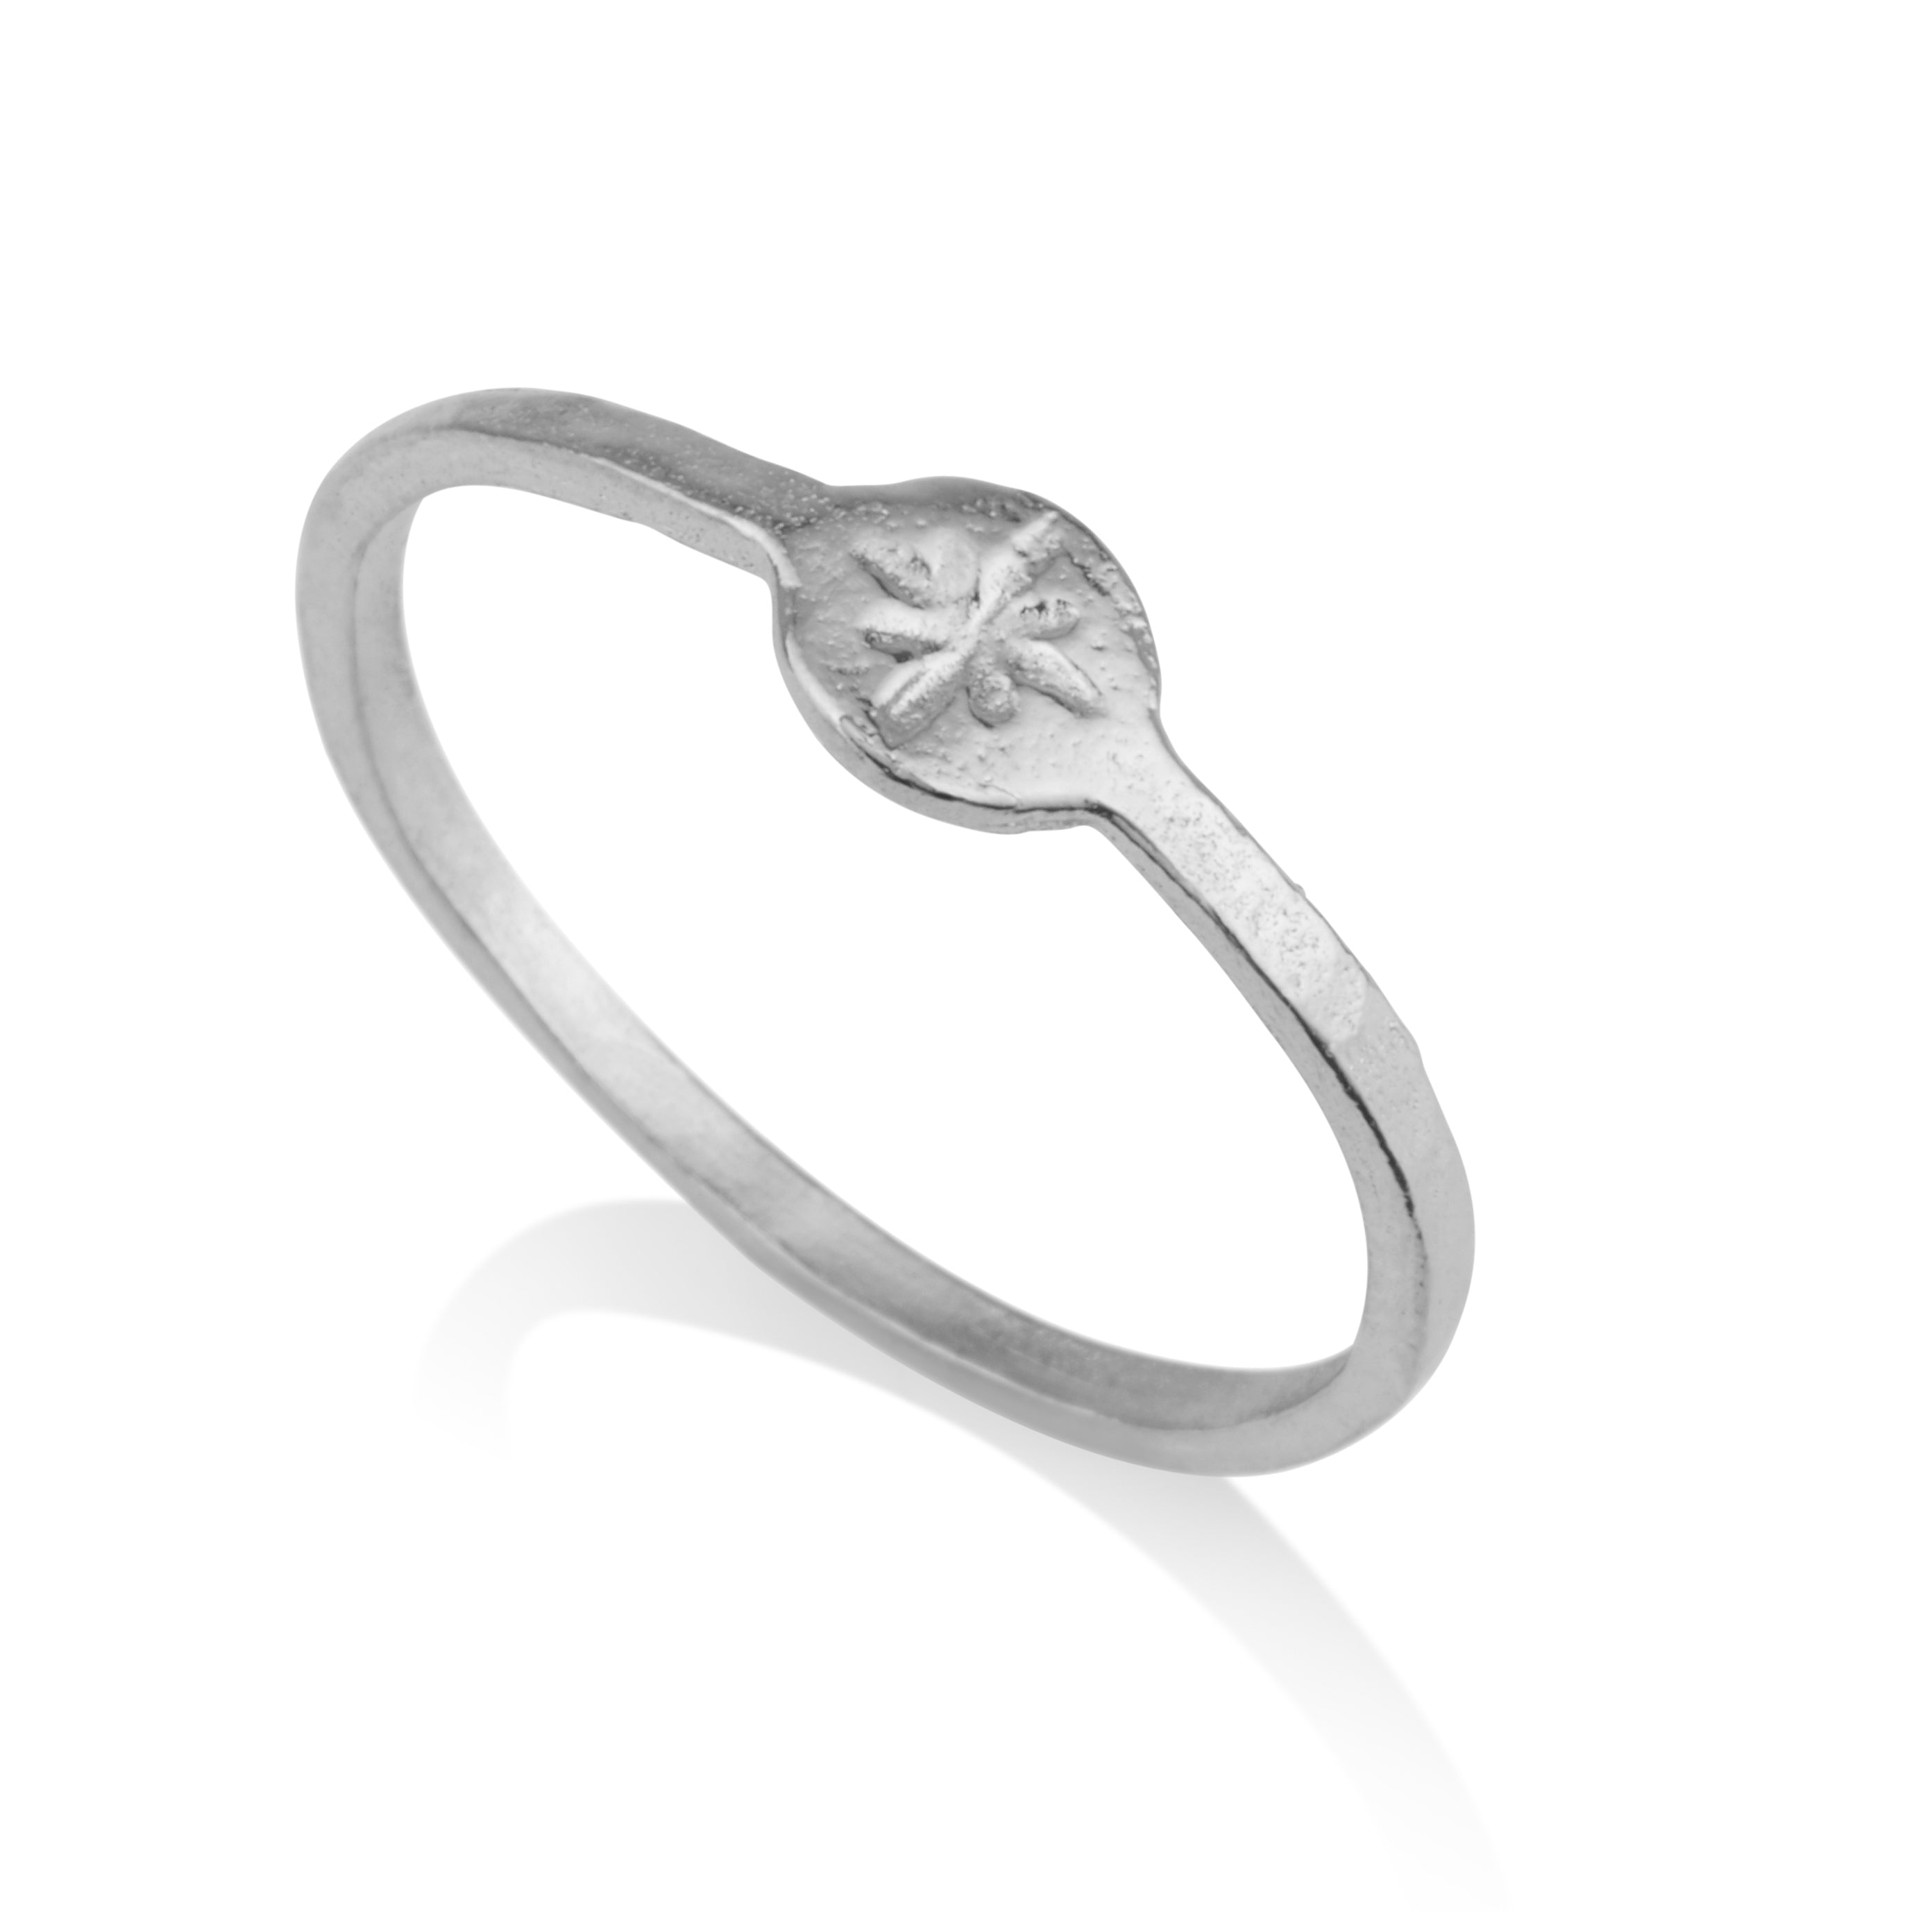 Star Engraving Ring